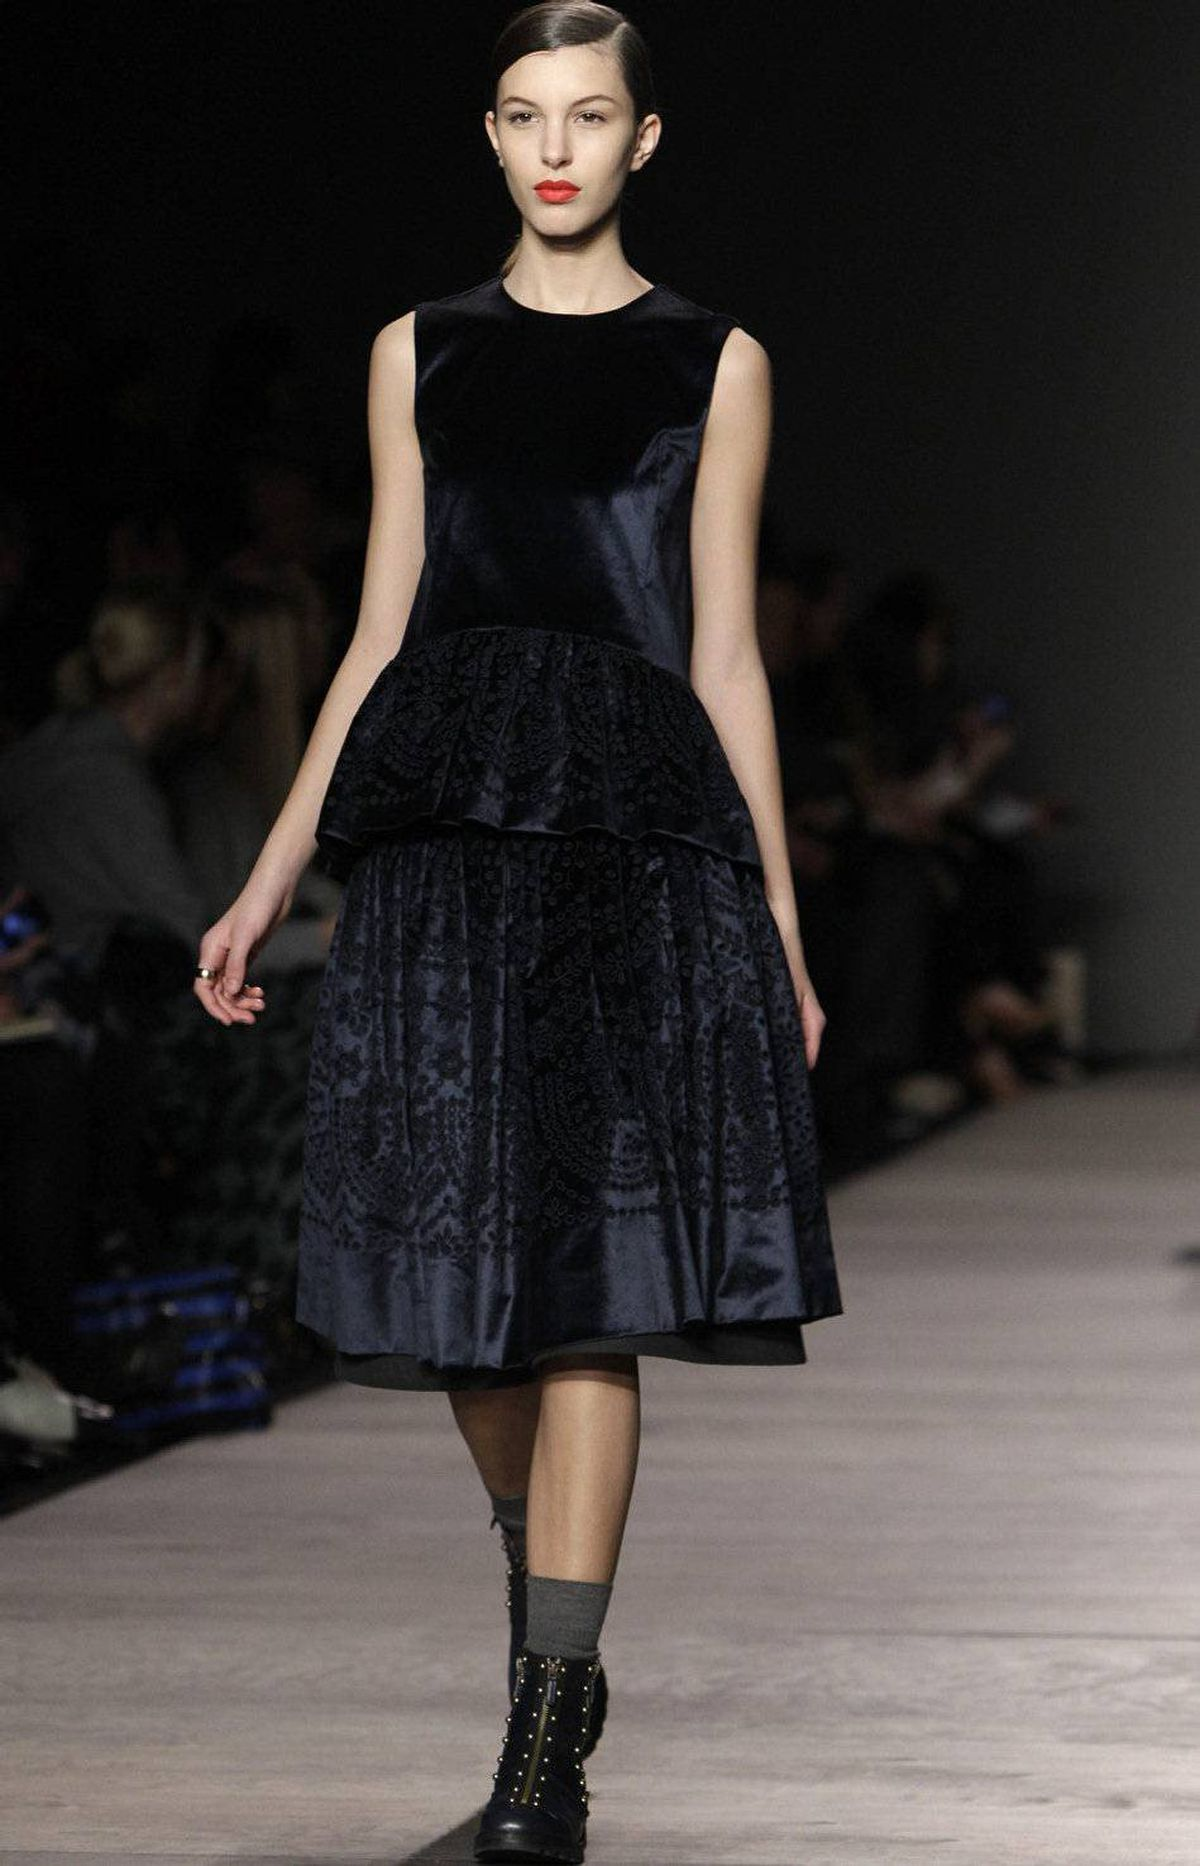 Do you remember Tory Burch's inspiration from earlier – a prim girl hanging out with the wrong kind of guy? I get that message with this velvet dress and motorcycle boot look. And, yet, I'm sure she's having fun.